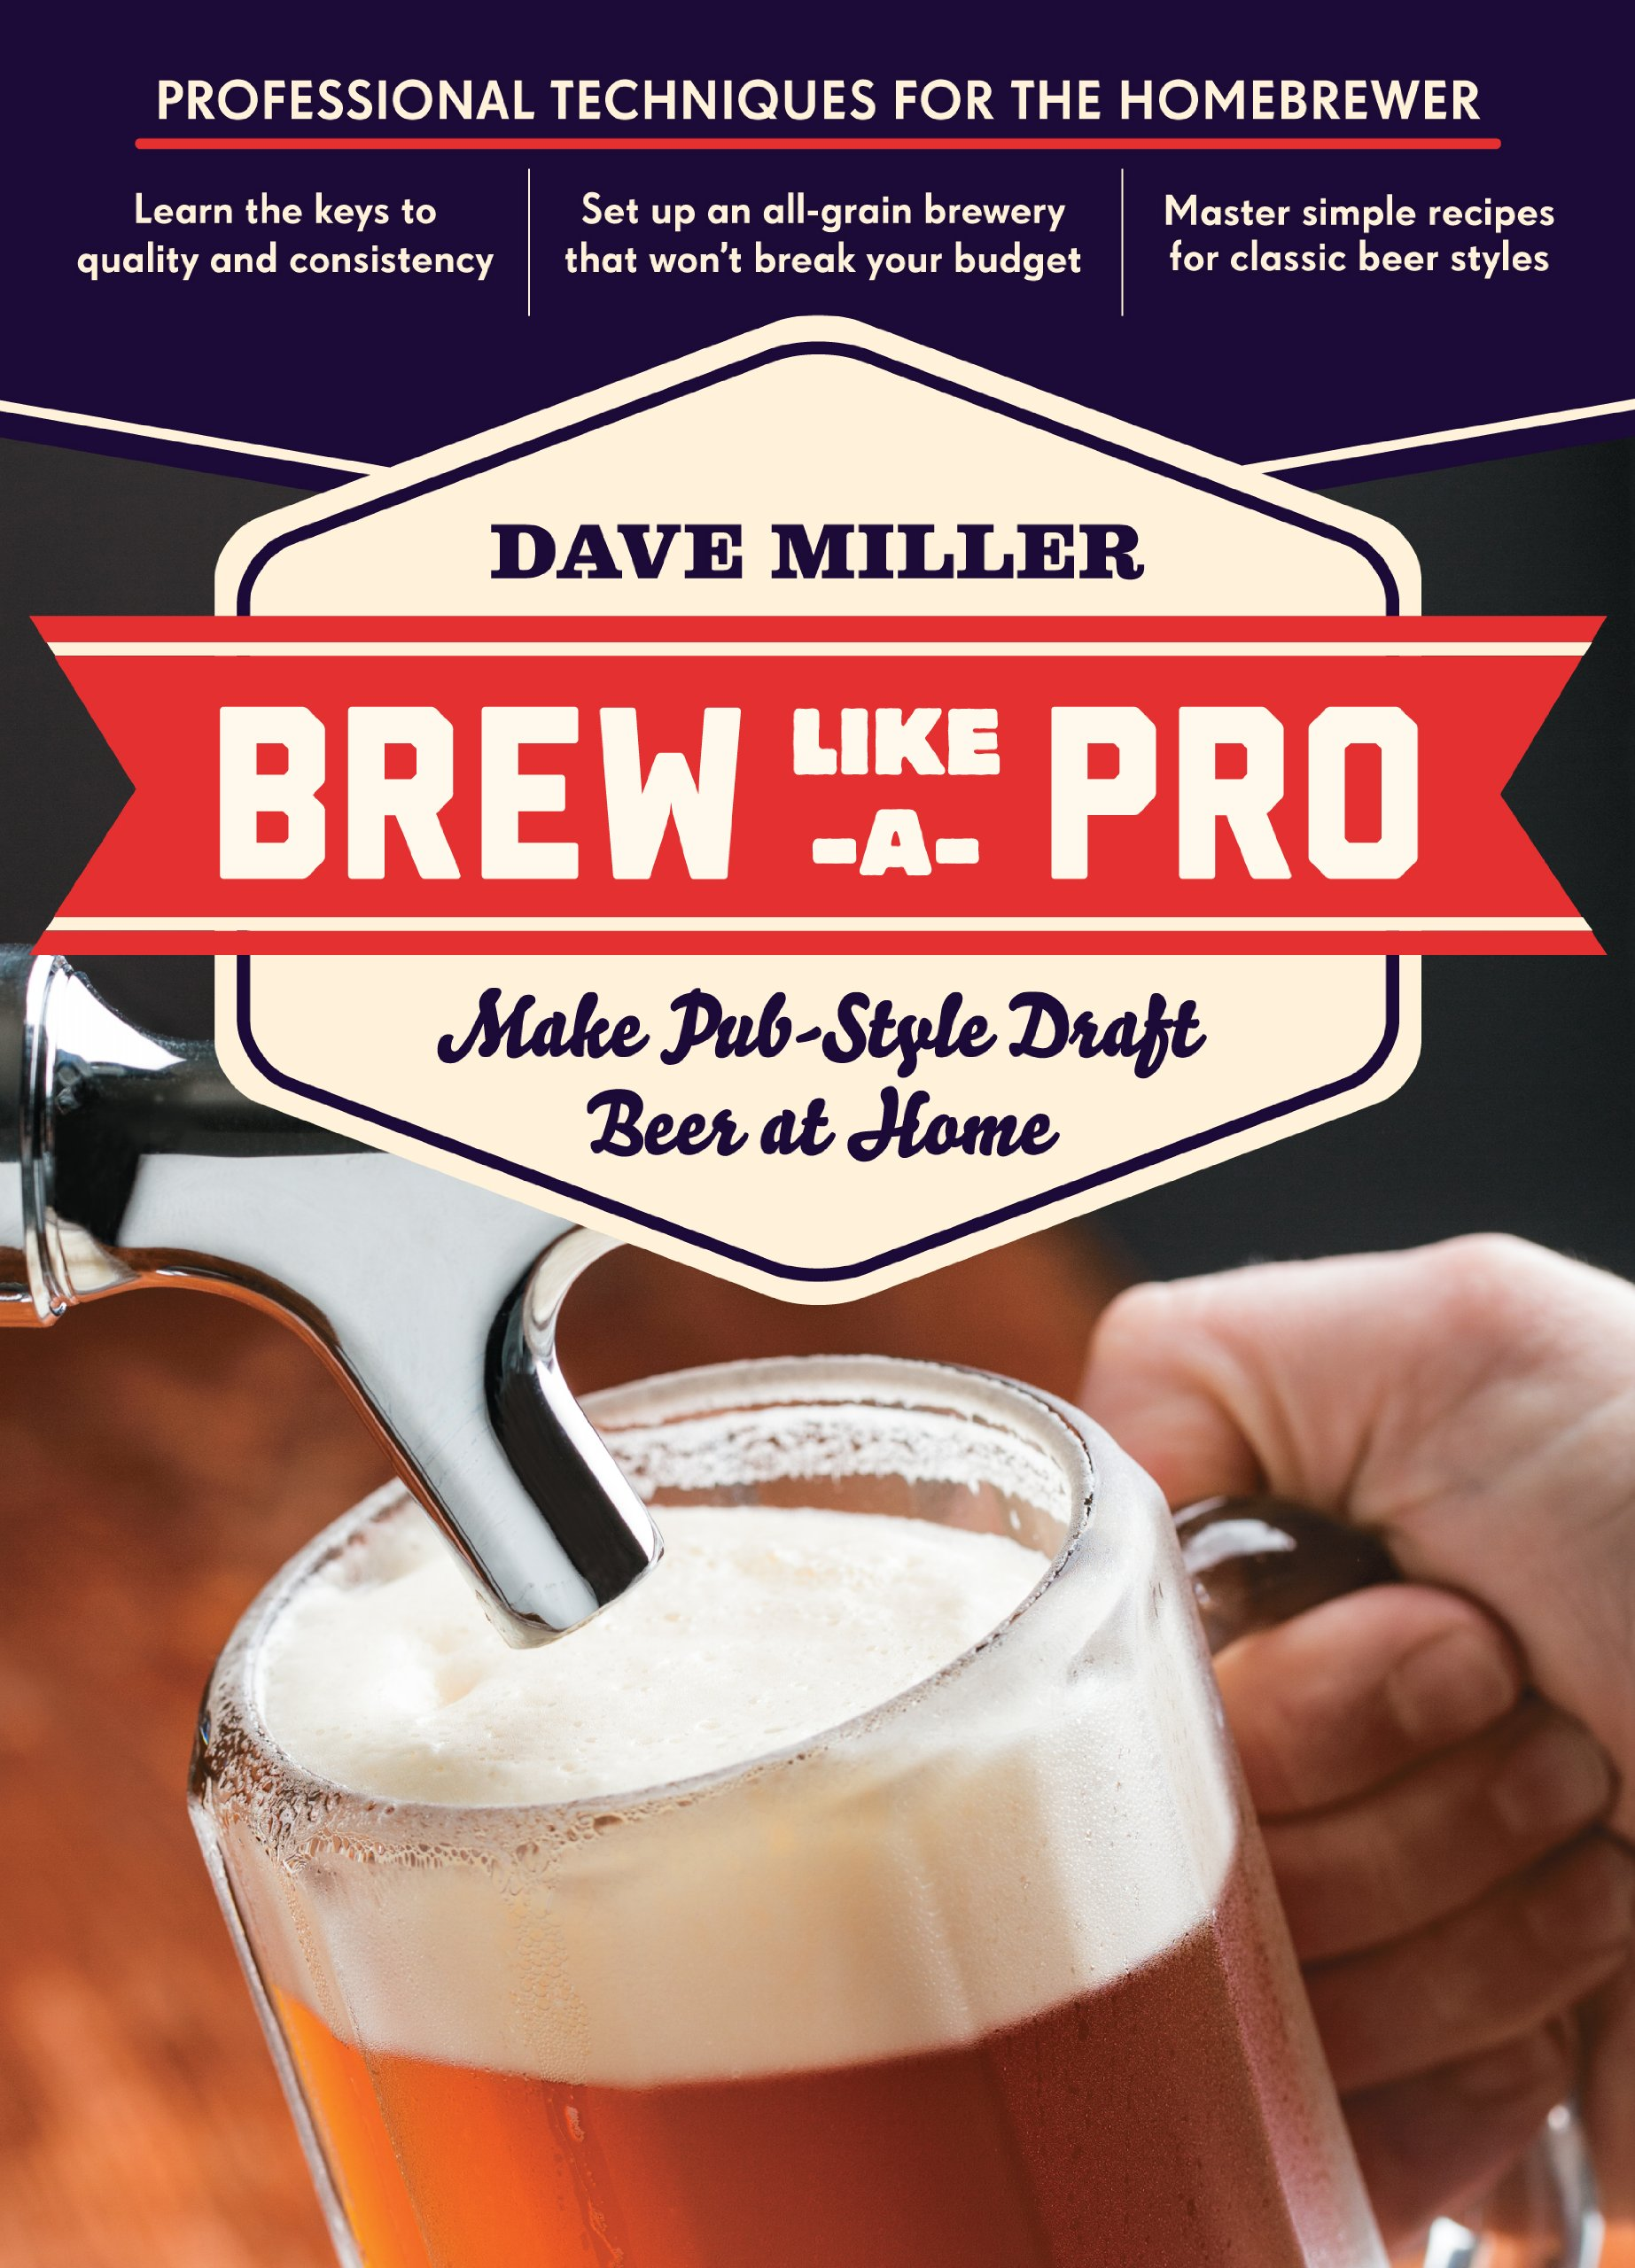 Home wine making and beer brewing recipes quality wine - Brew Like A Pro Make Pub Style Draft Beer At Home Dave Miller 9781612120508 Amazon Com Books